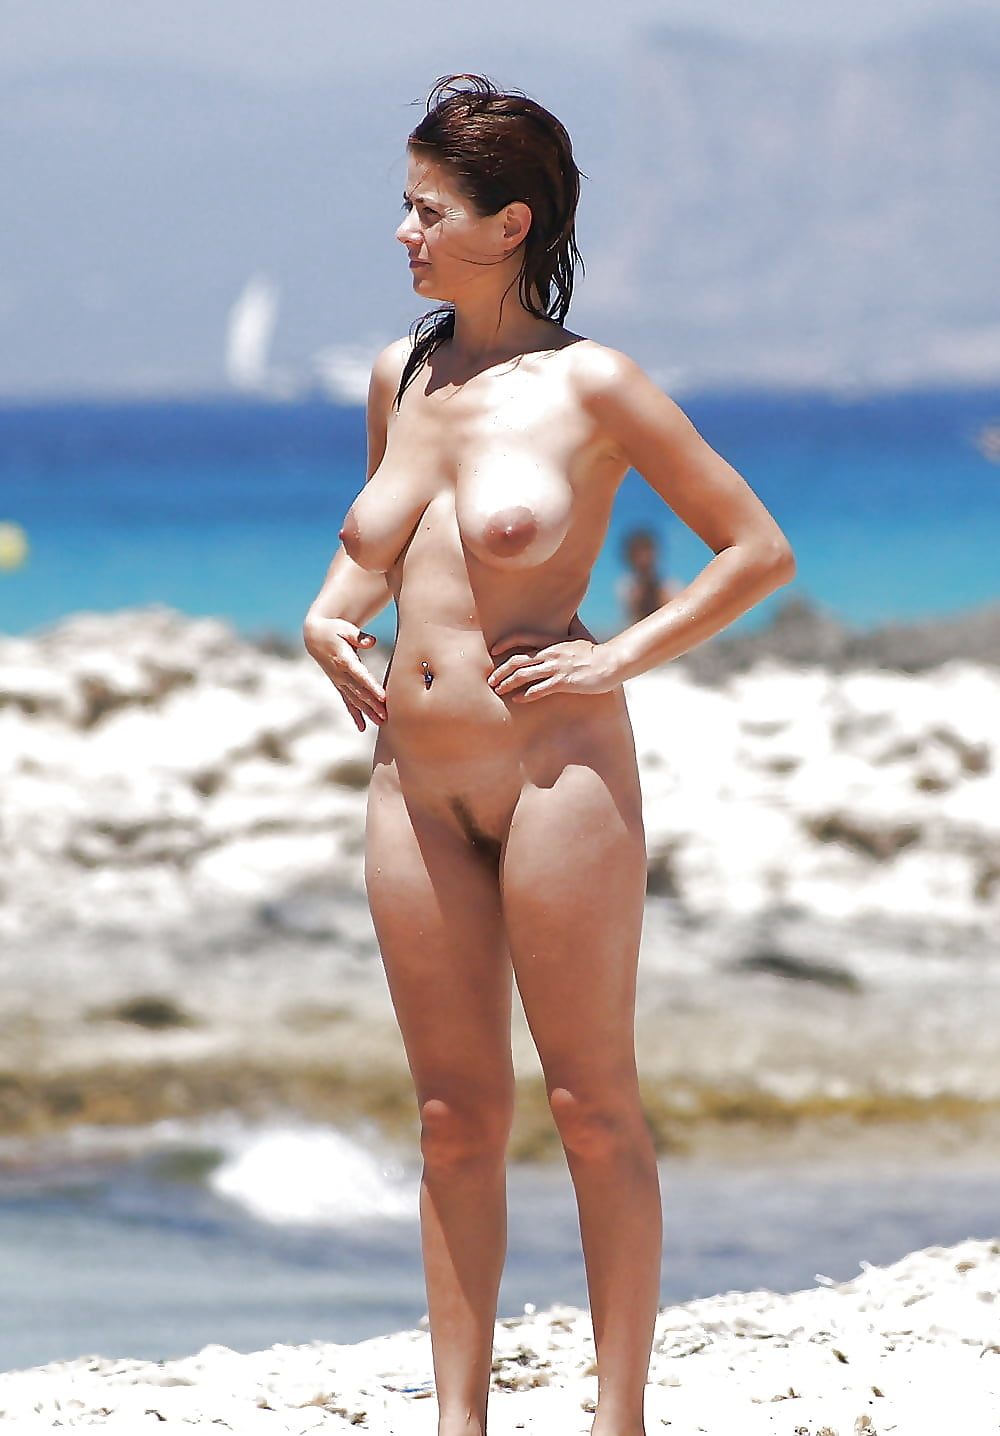 Hot naked spanish girl on beach — 3